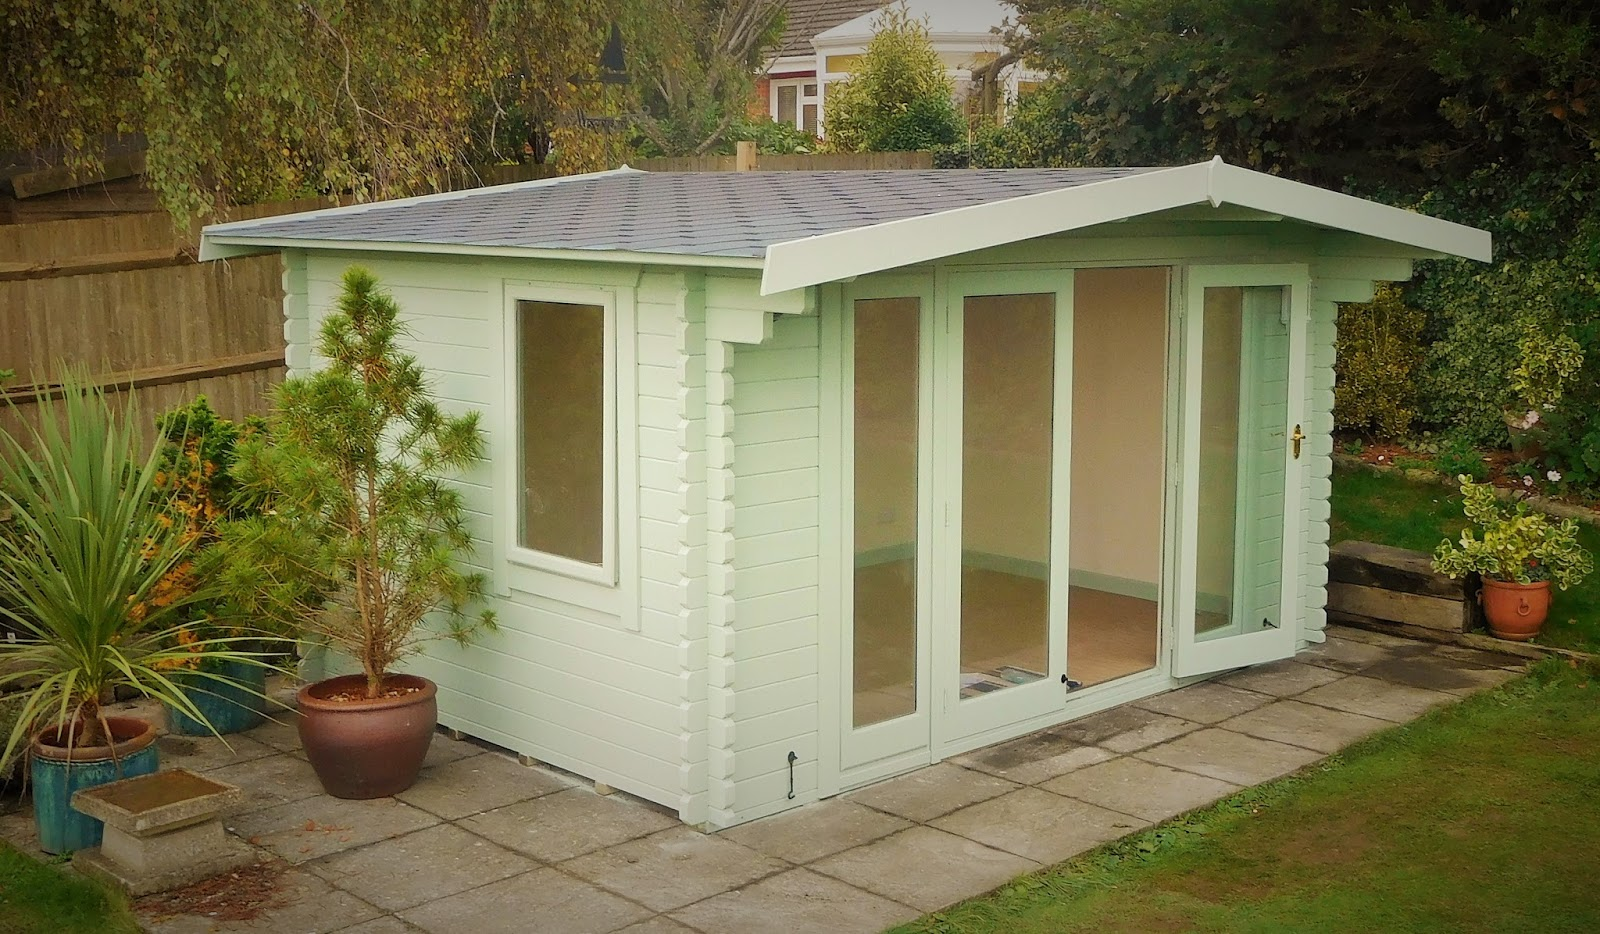 Latest Customer Testimonial Received For An Insulated Garden Studio Built  At Winchester.